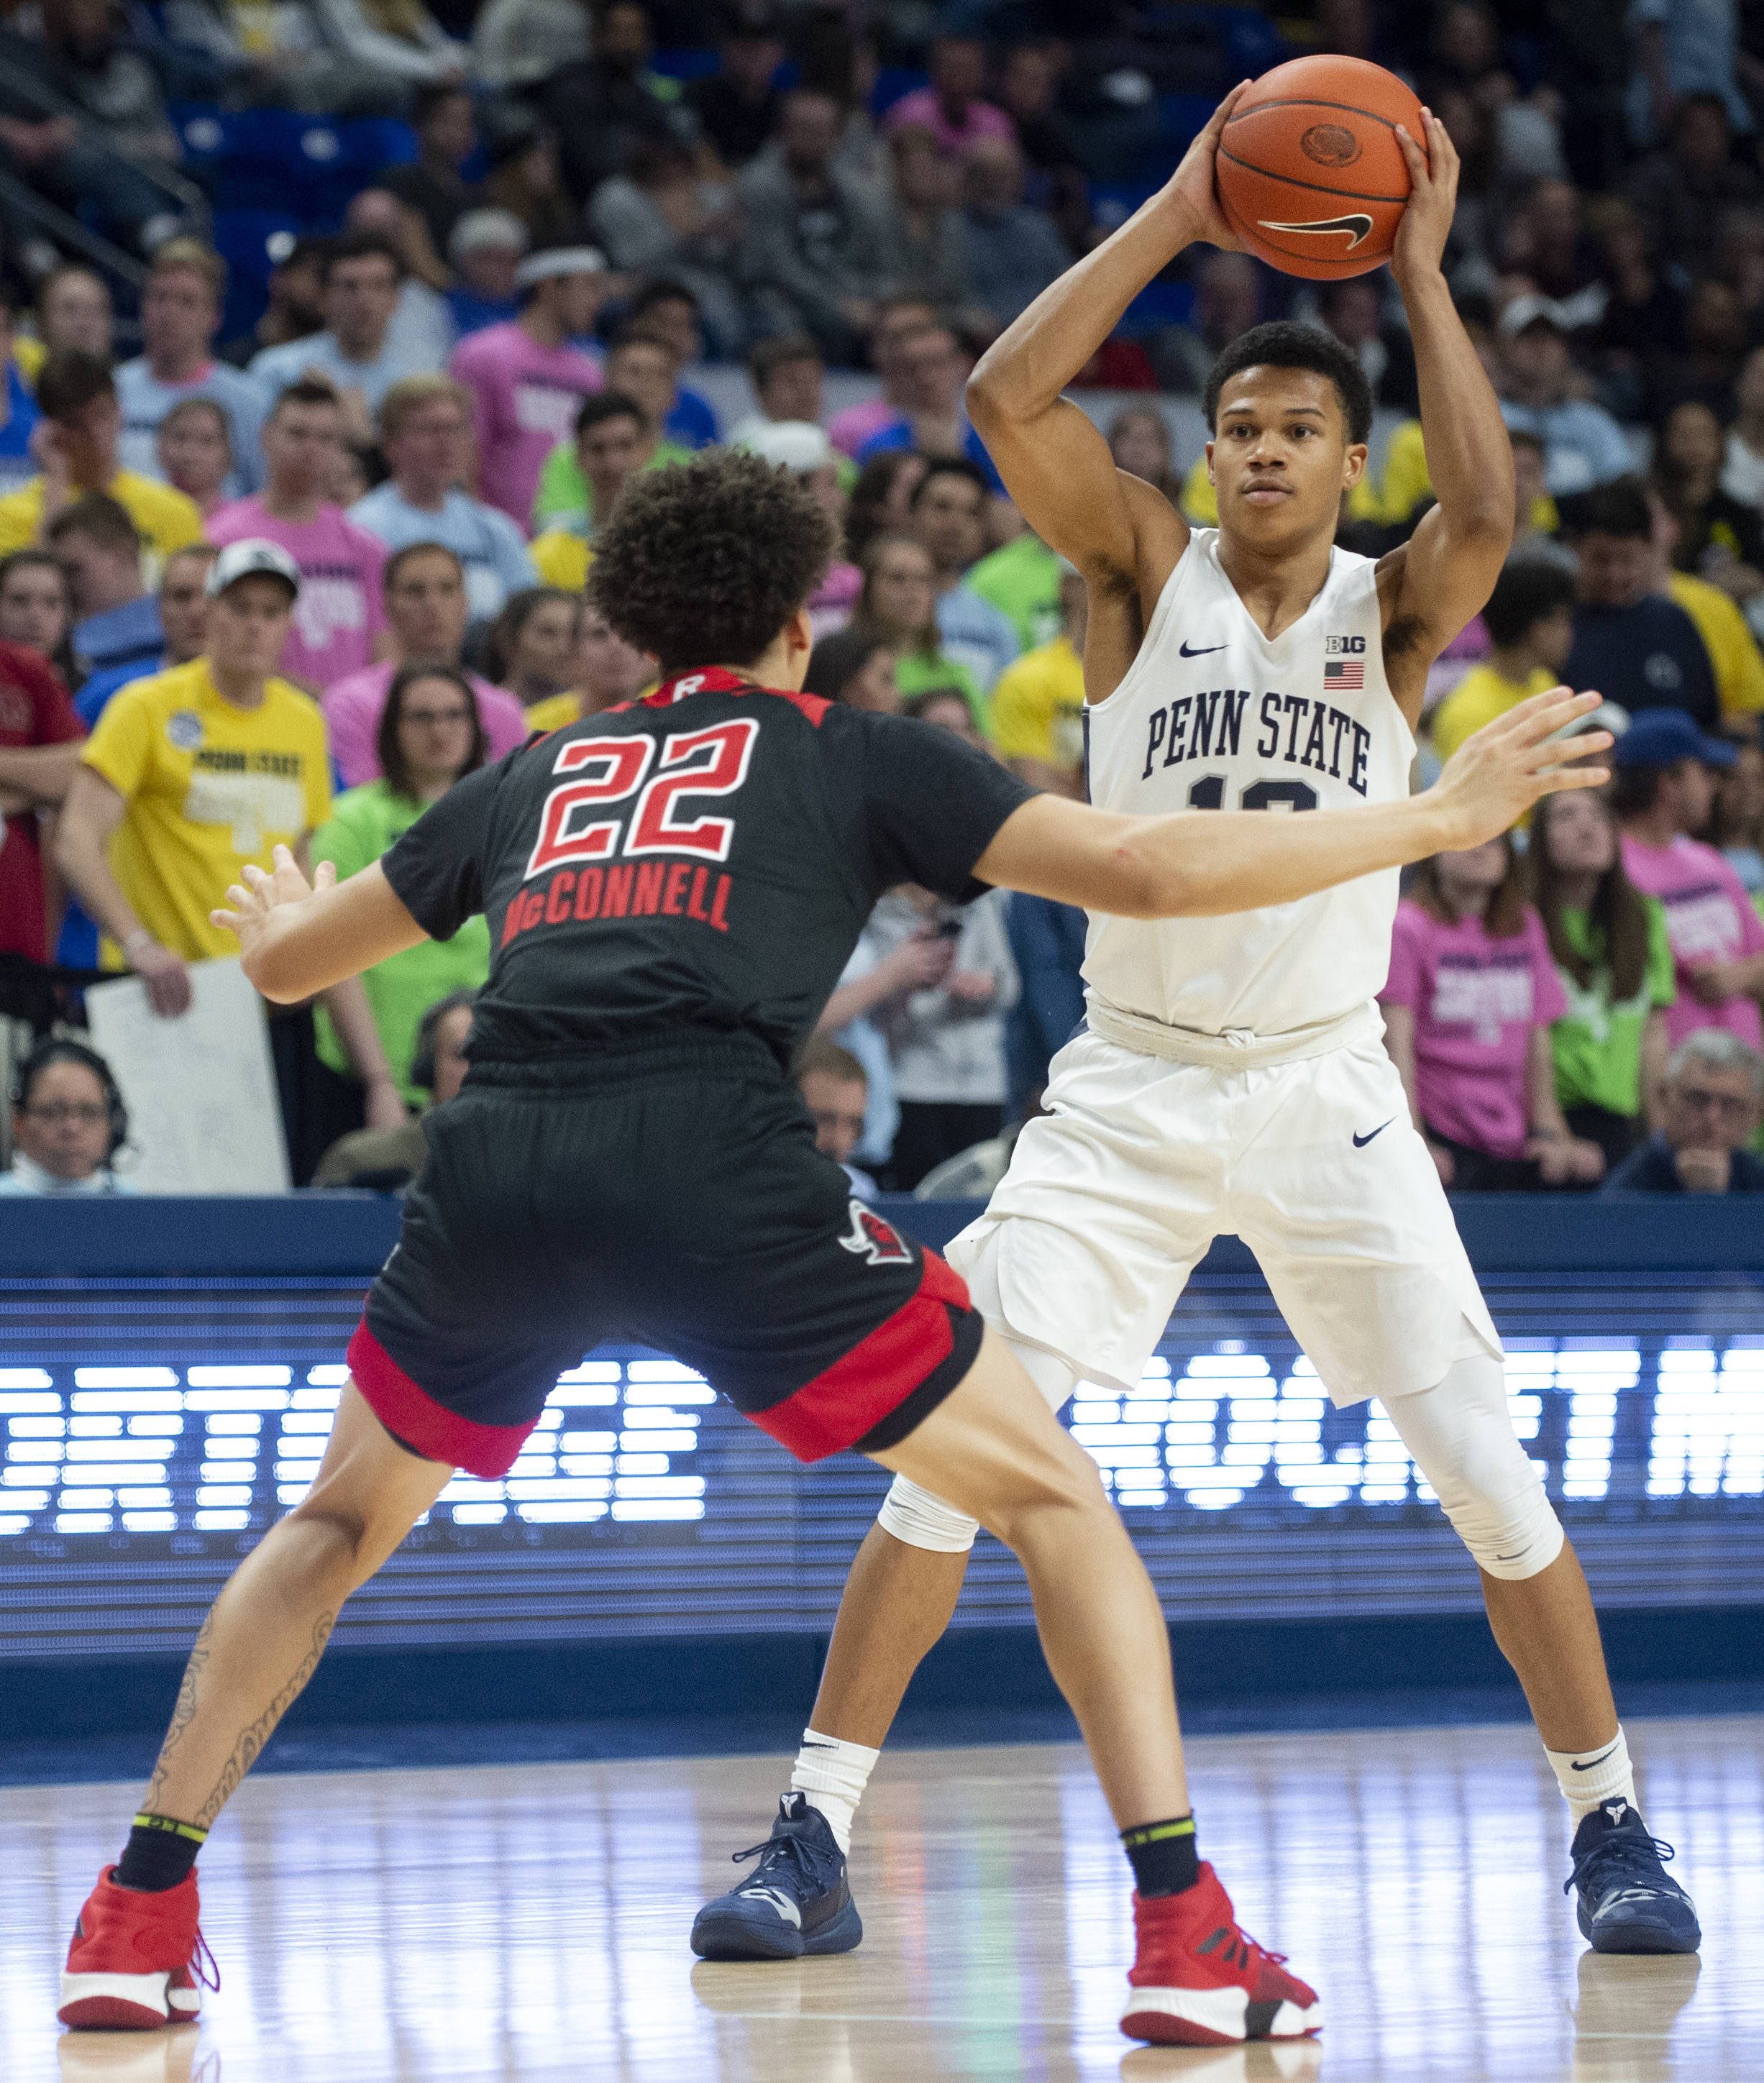 Guard Rasir Bolton (13) looks for a pass during their game against Rutgers at the Bryce Jordan Center on Saturday, Jan. 26, 2019. The Nittany Lions fall to Rutgers 64-60 and stay winless in conference play extending their losing streak to 7 games. | Photo by: Noah Riffe